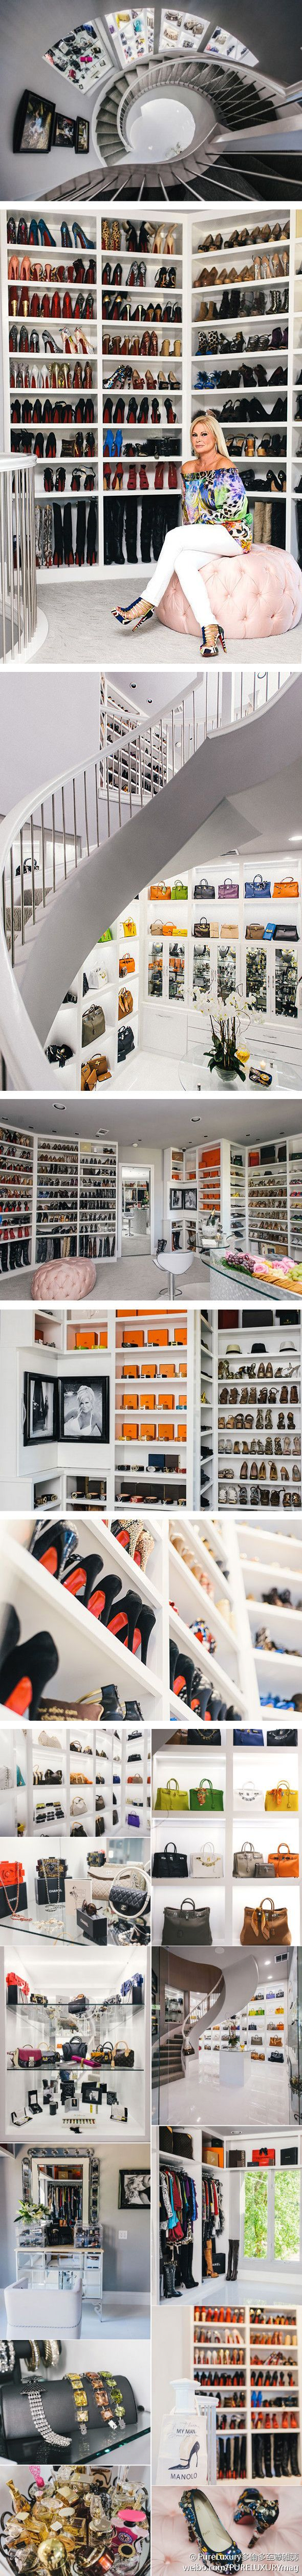 Theresa Roemers Fabulously Luxurious Closet - Pure Luxury Magazine - ShazB - Dream Homes